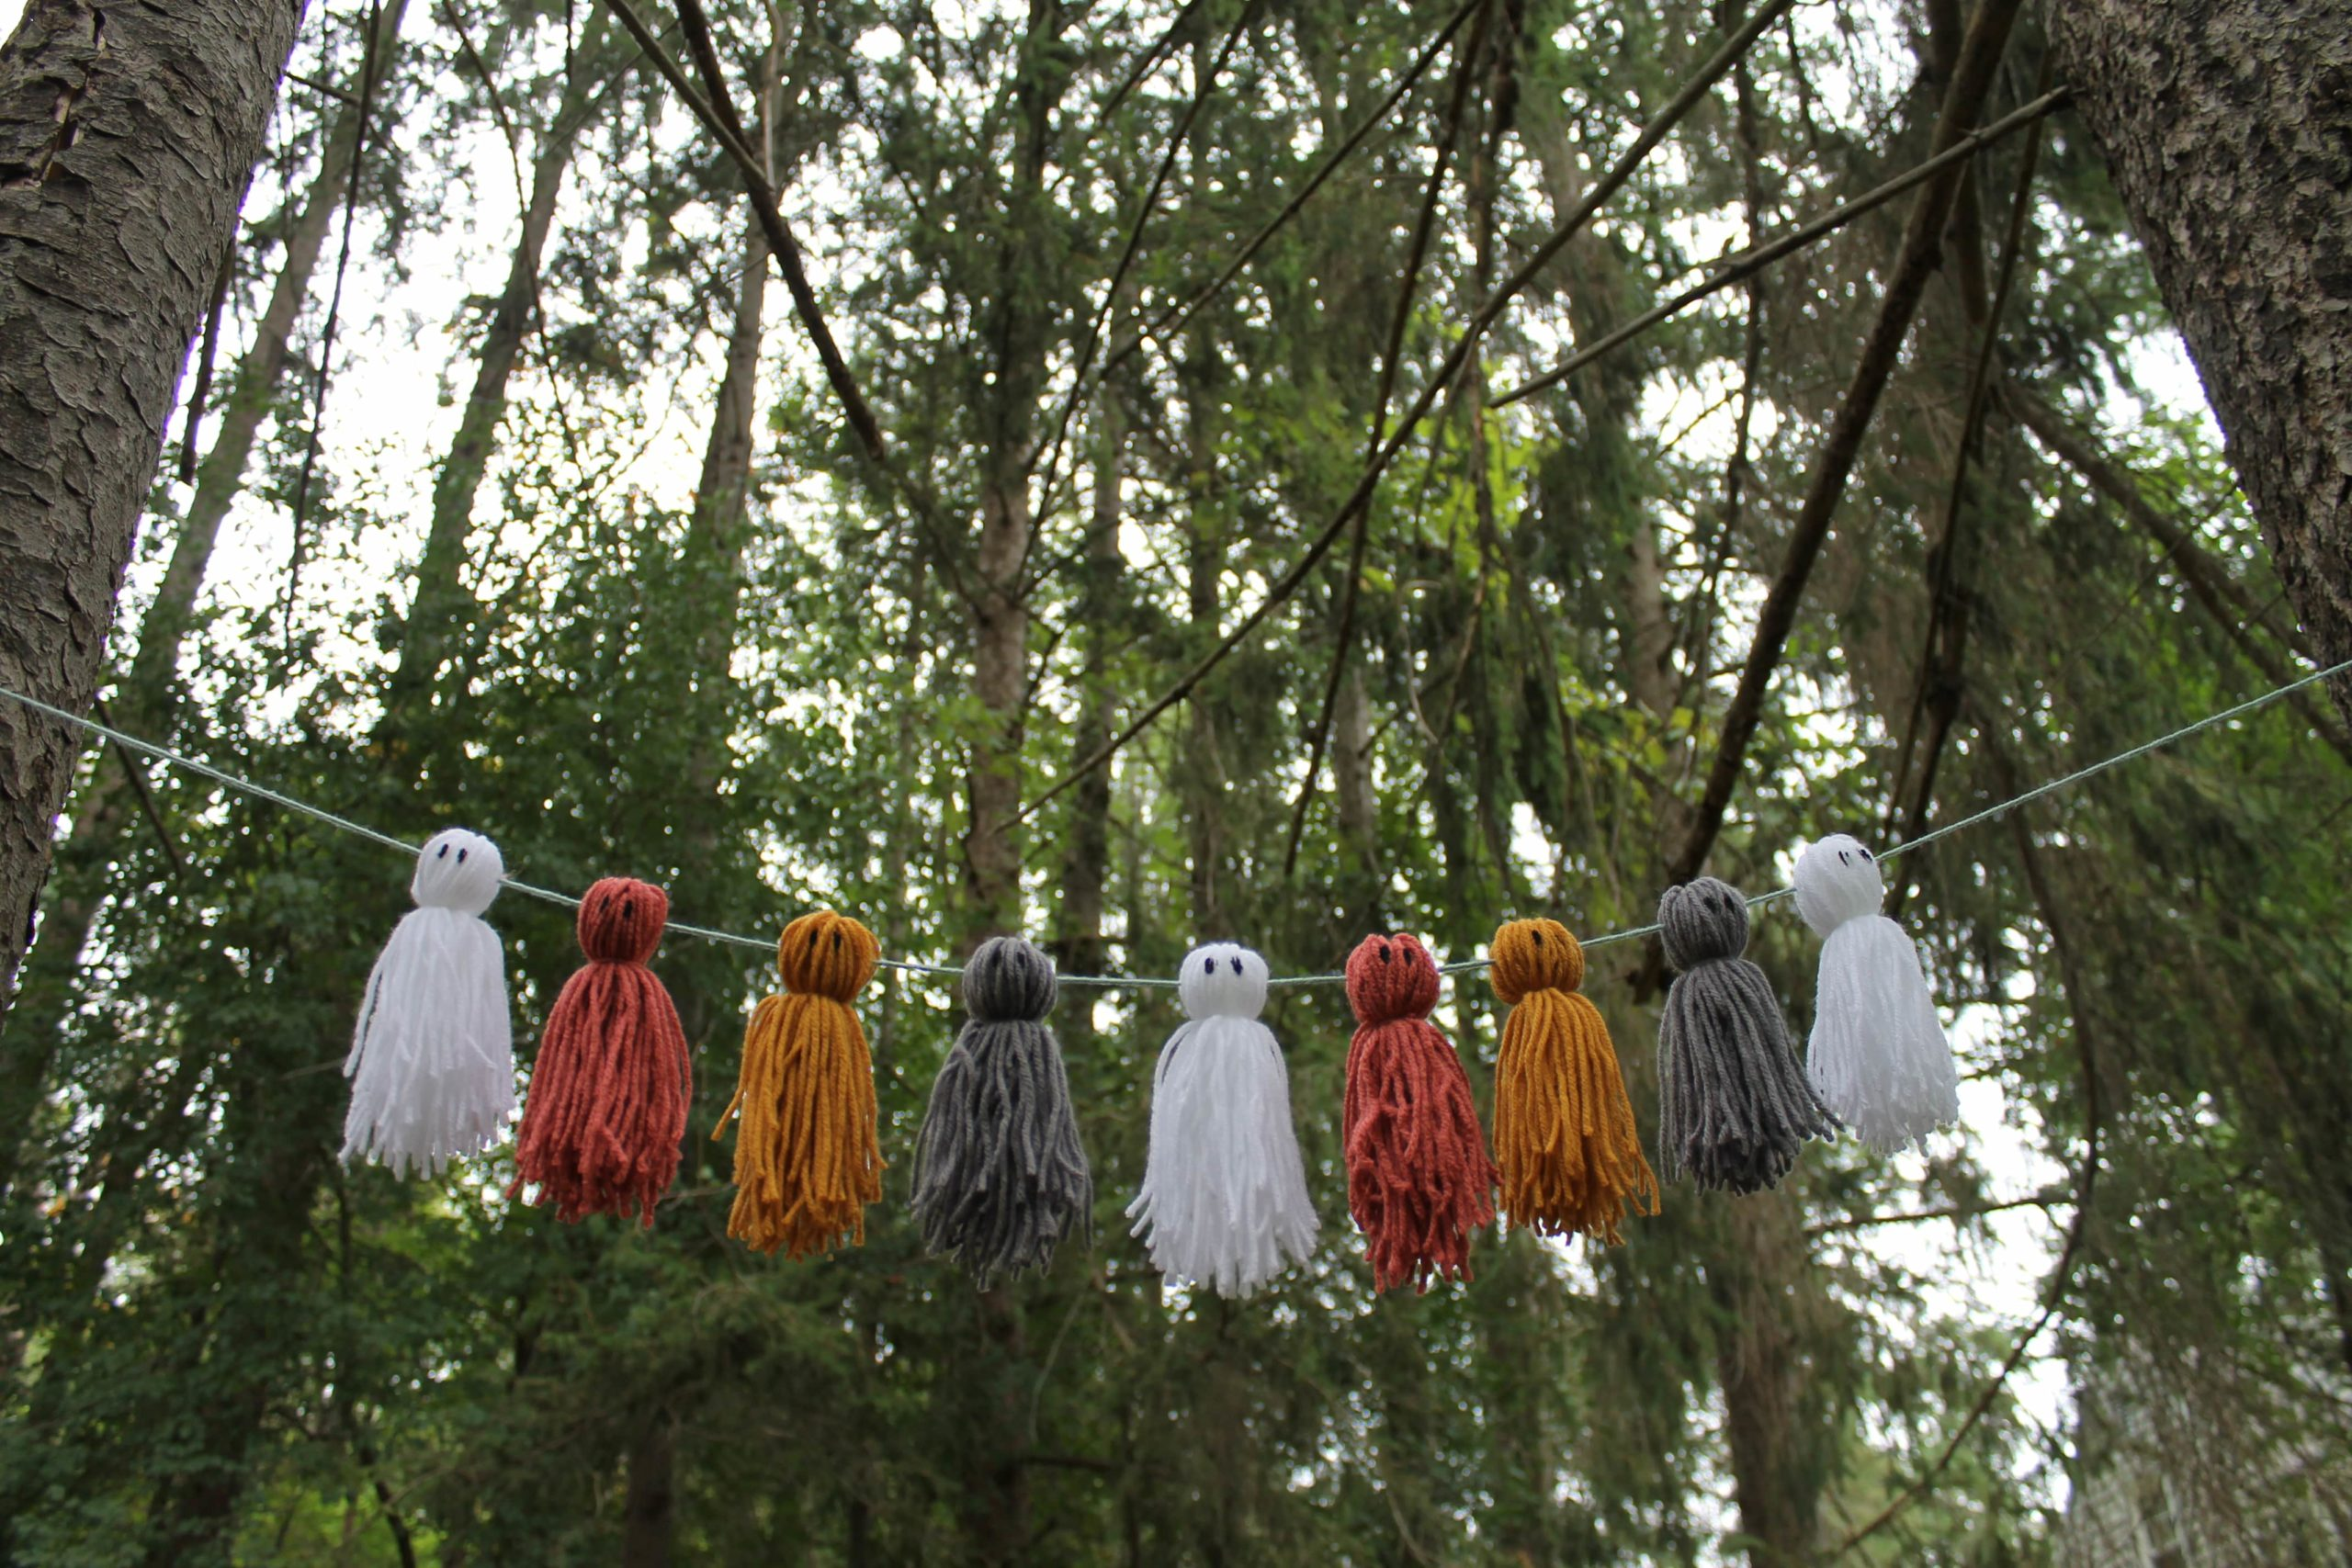 show casing the garland you will be making at the art class